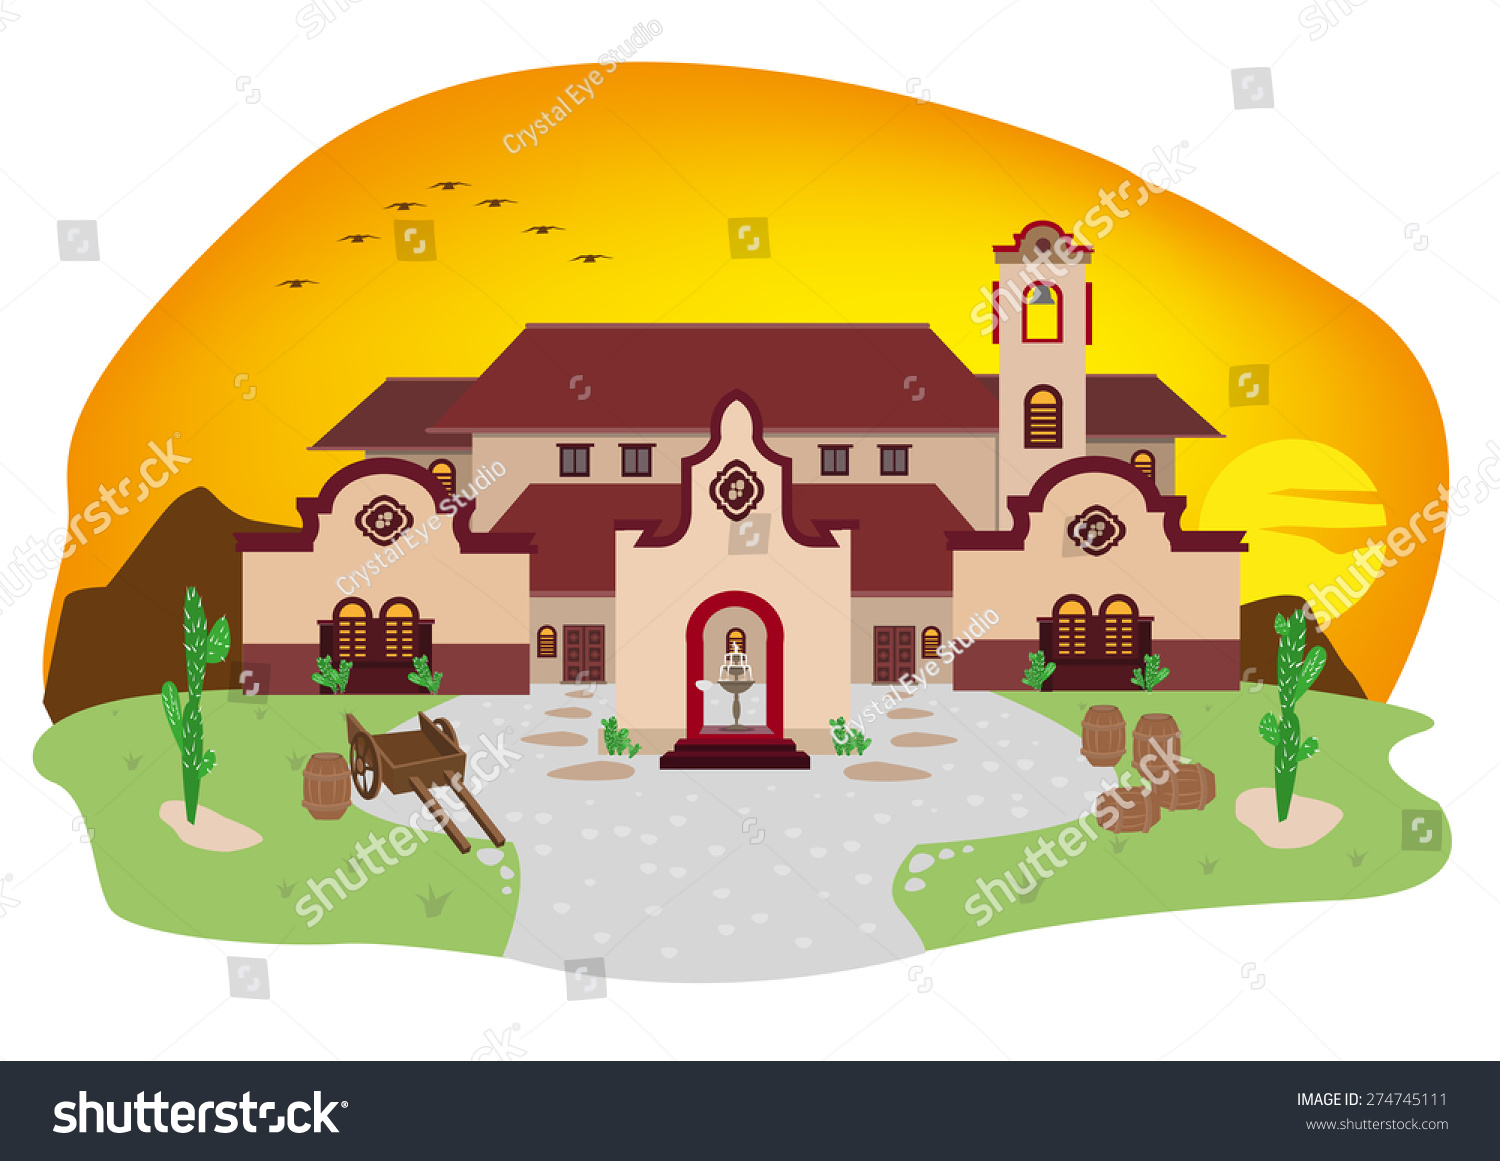 Ranch-style house - Wikipedia